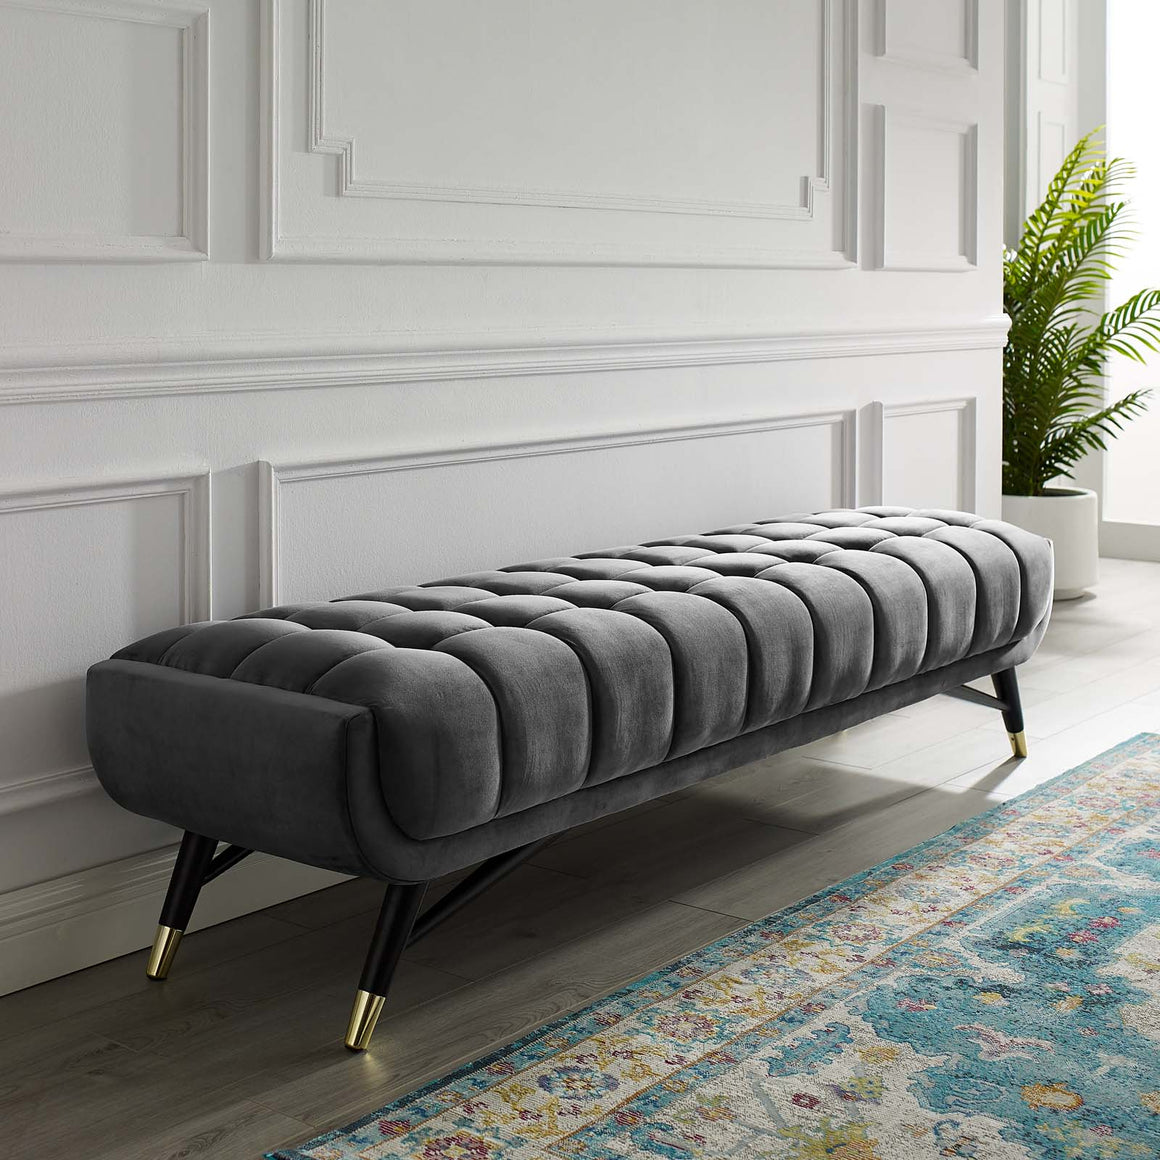 ADEPT UPHOLSTERED VELVET BENCH